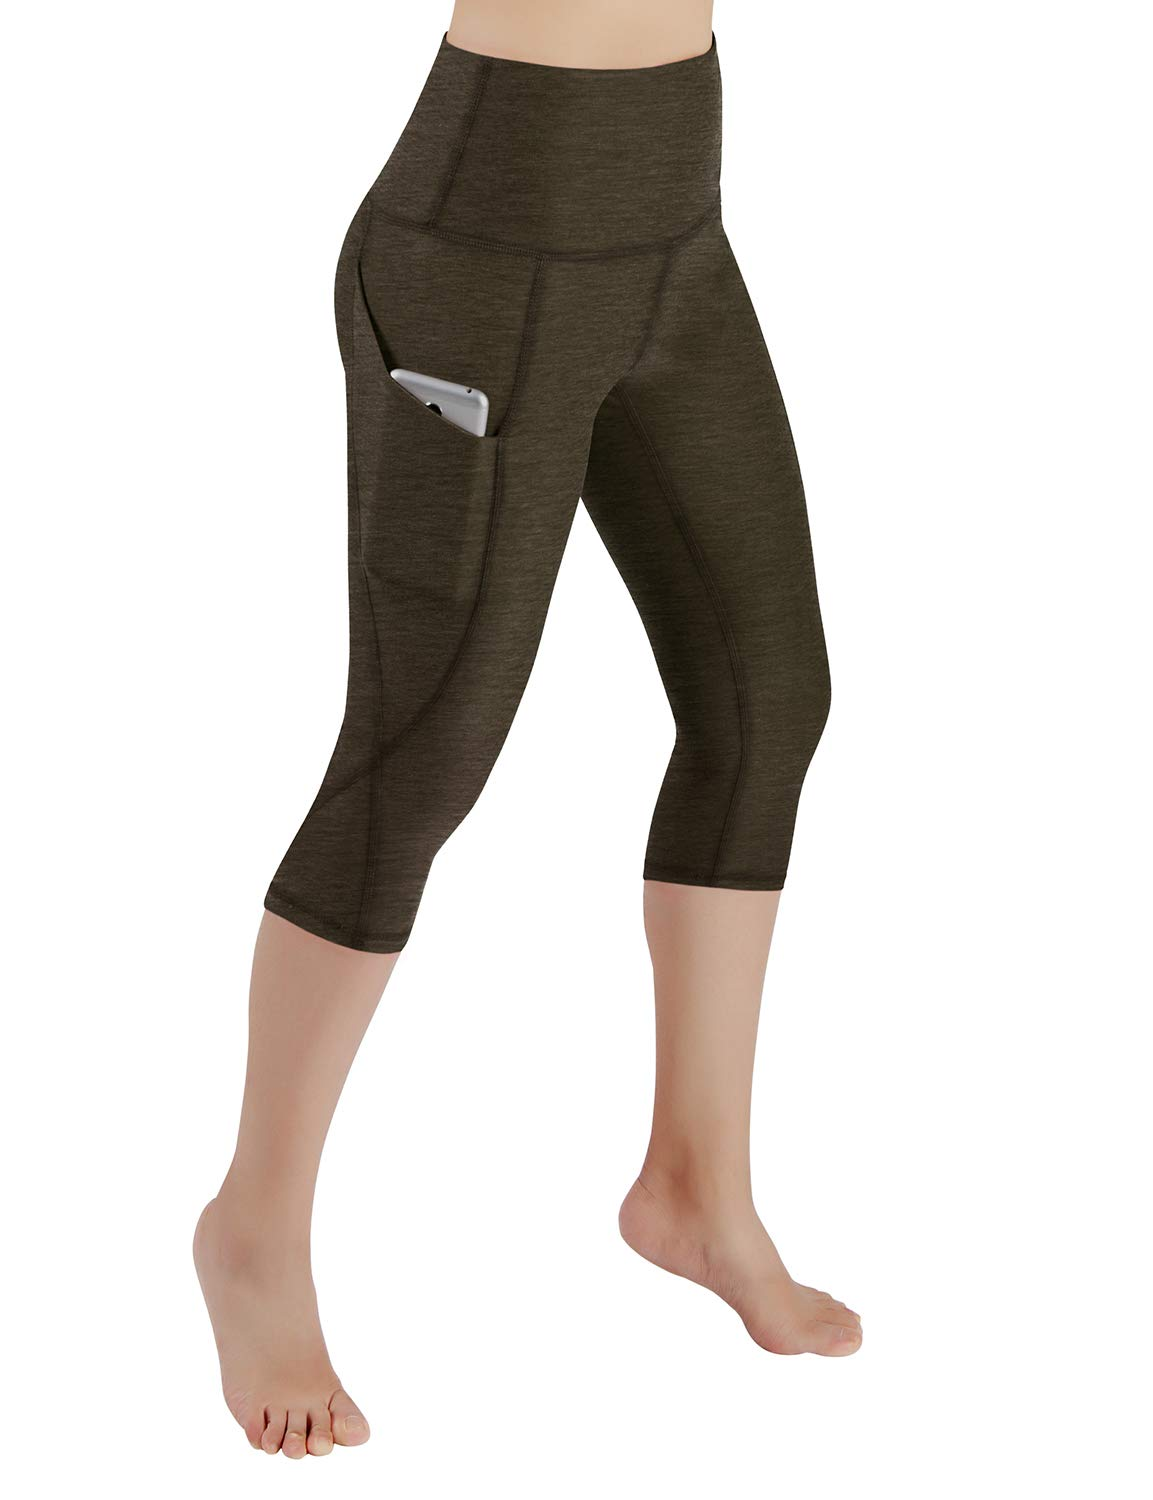 ODODOS High Waist Out Pocket Yoga Capris Pants Tummy Control Workout Running 4 Way Stretch Yoga Leggings,Olive,X-Small